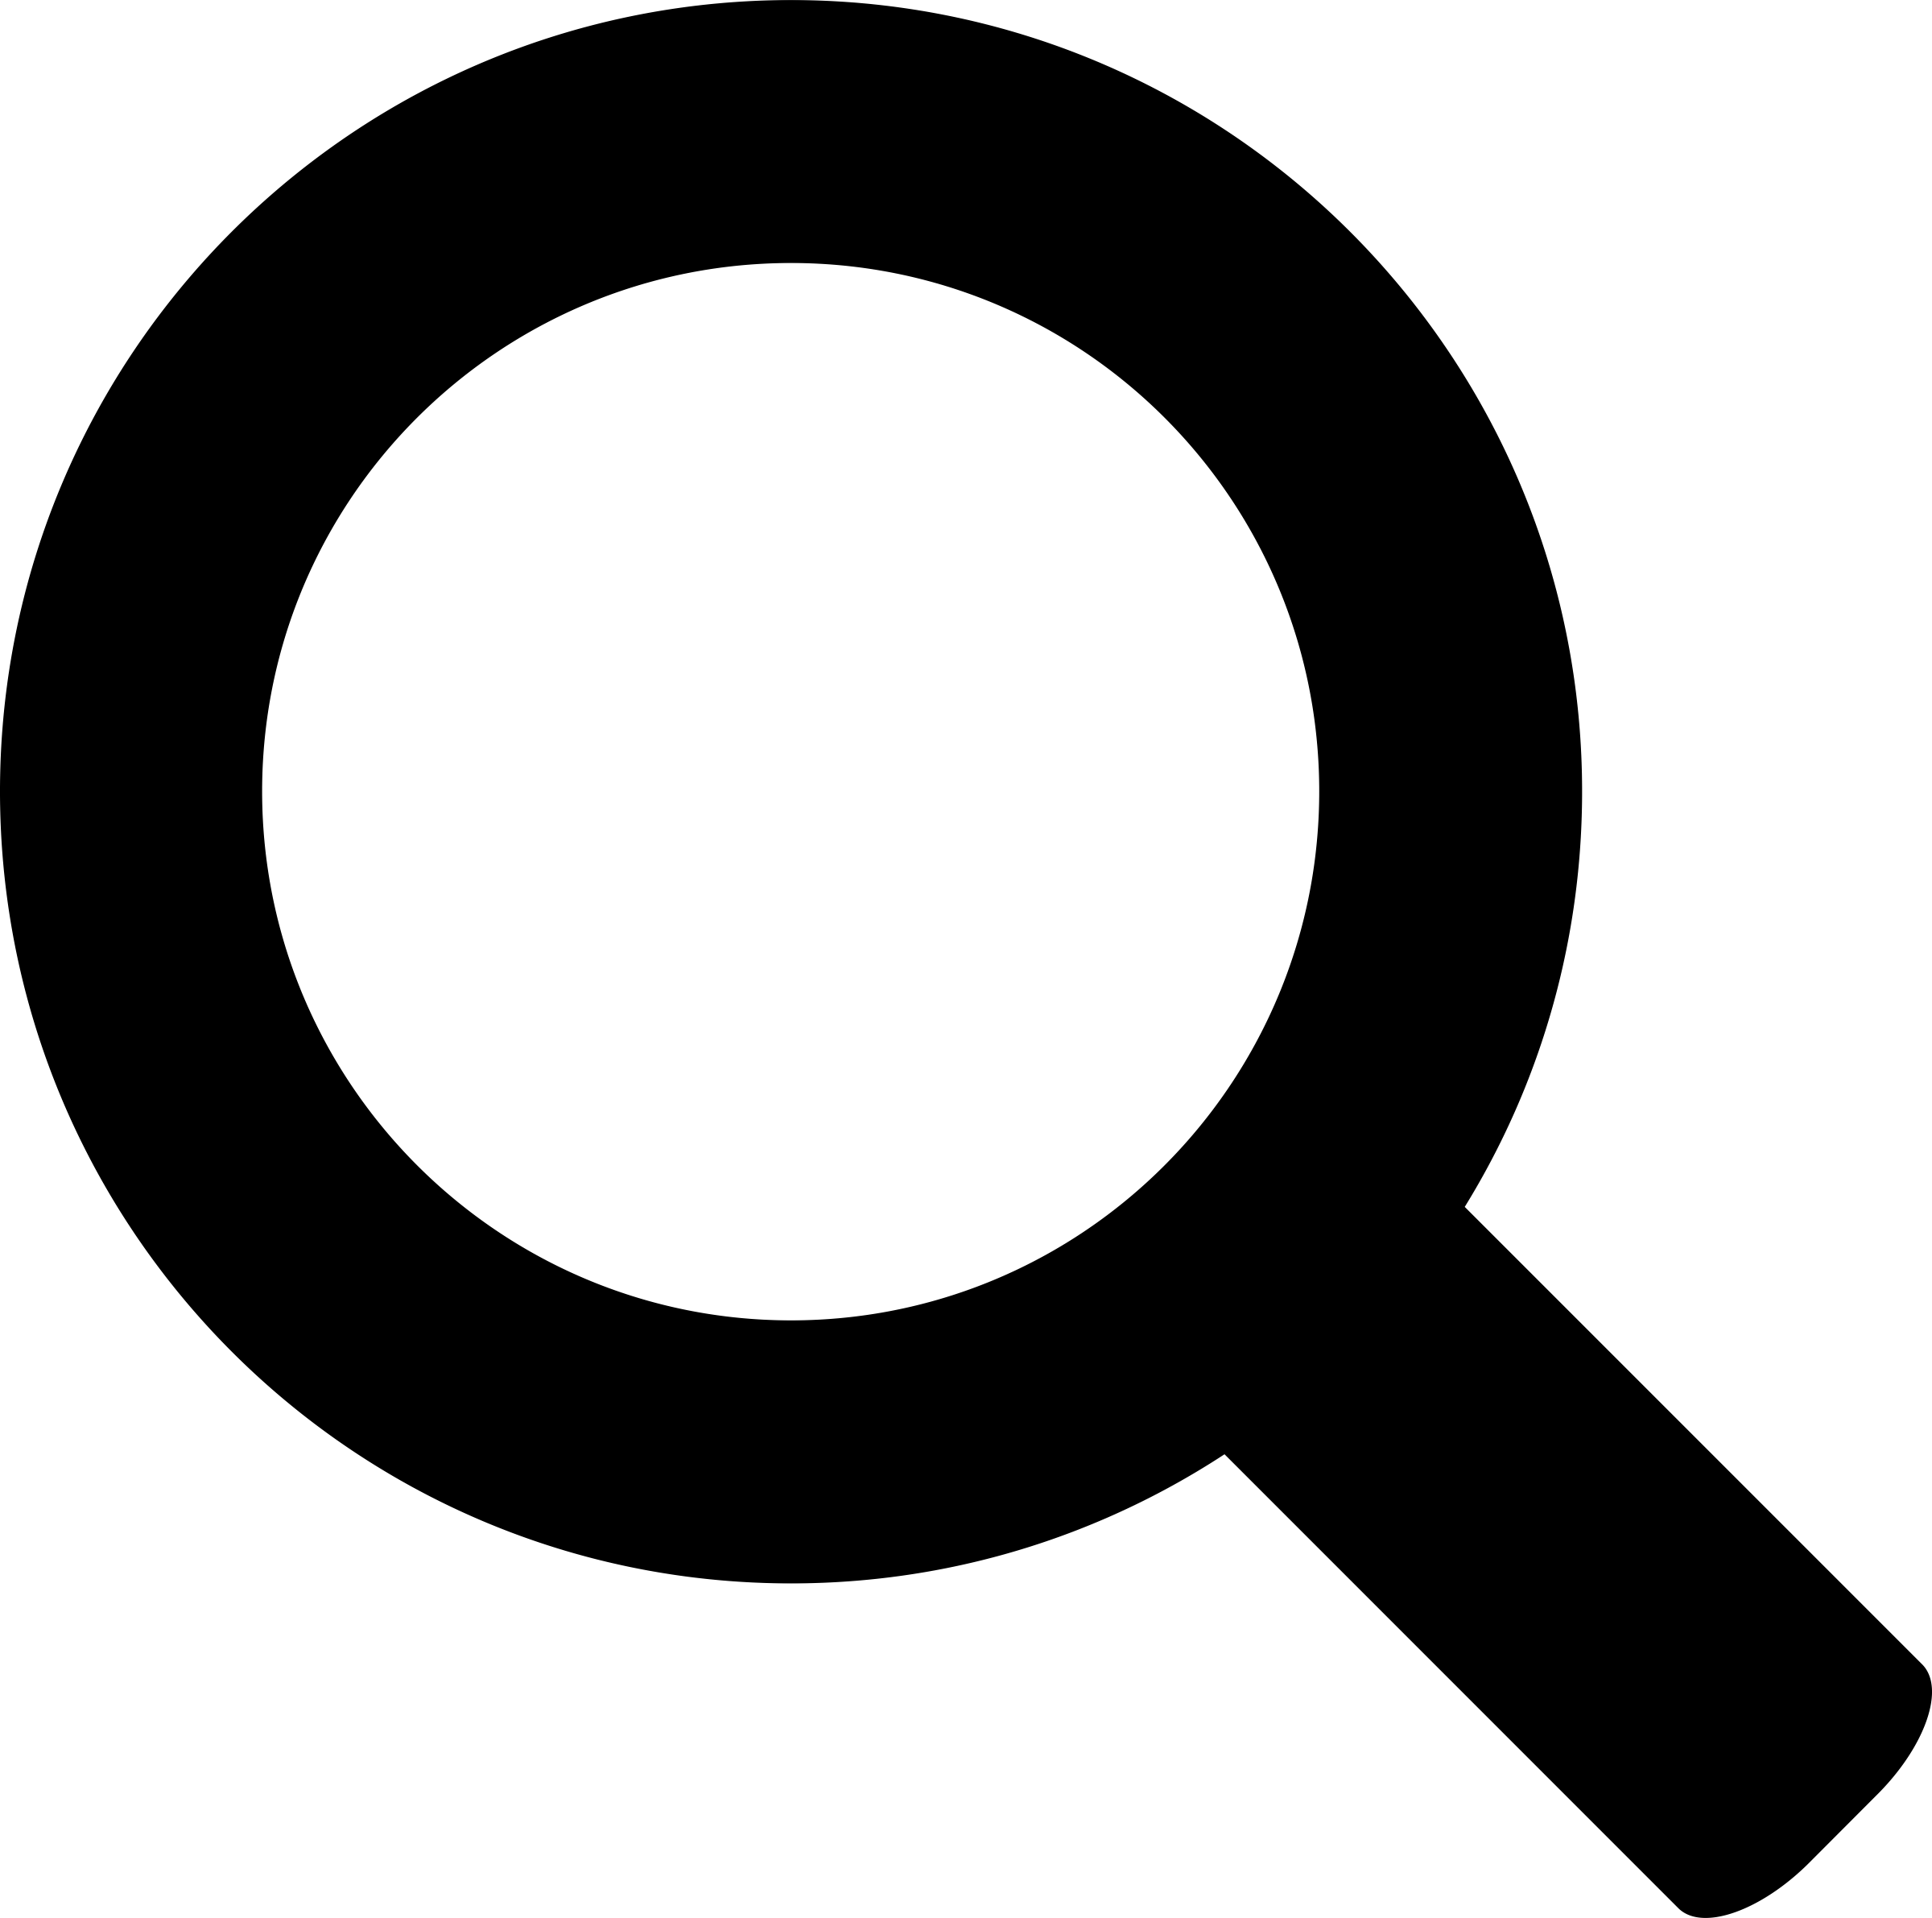 2400x2382 Neat Simple Search Icon Transparent Png